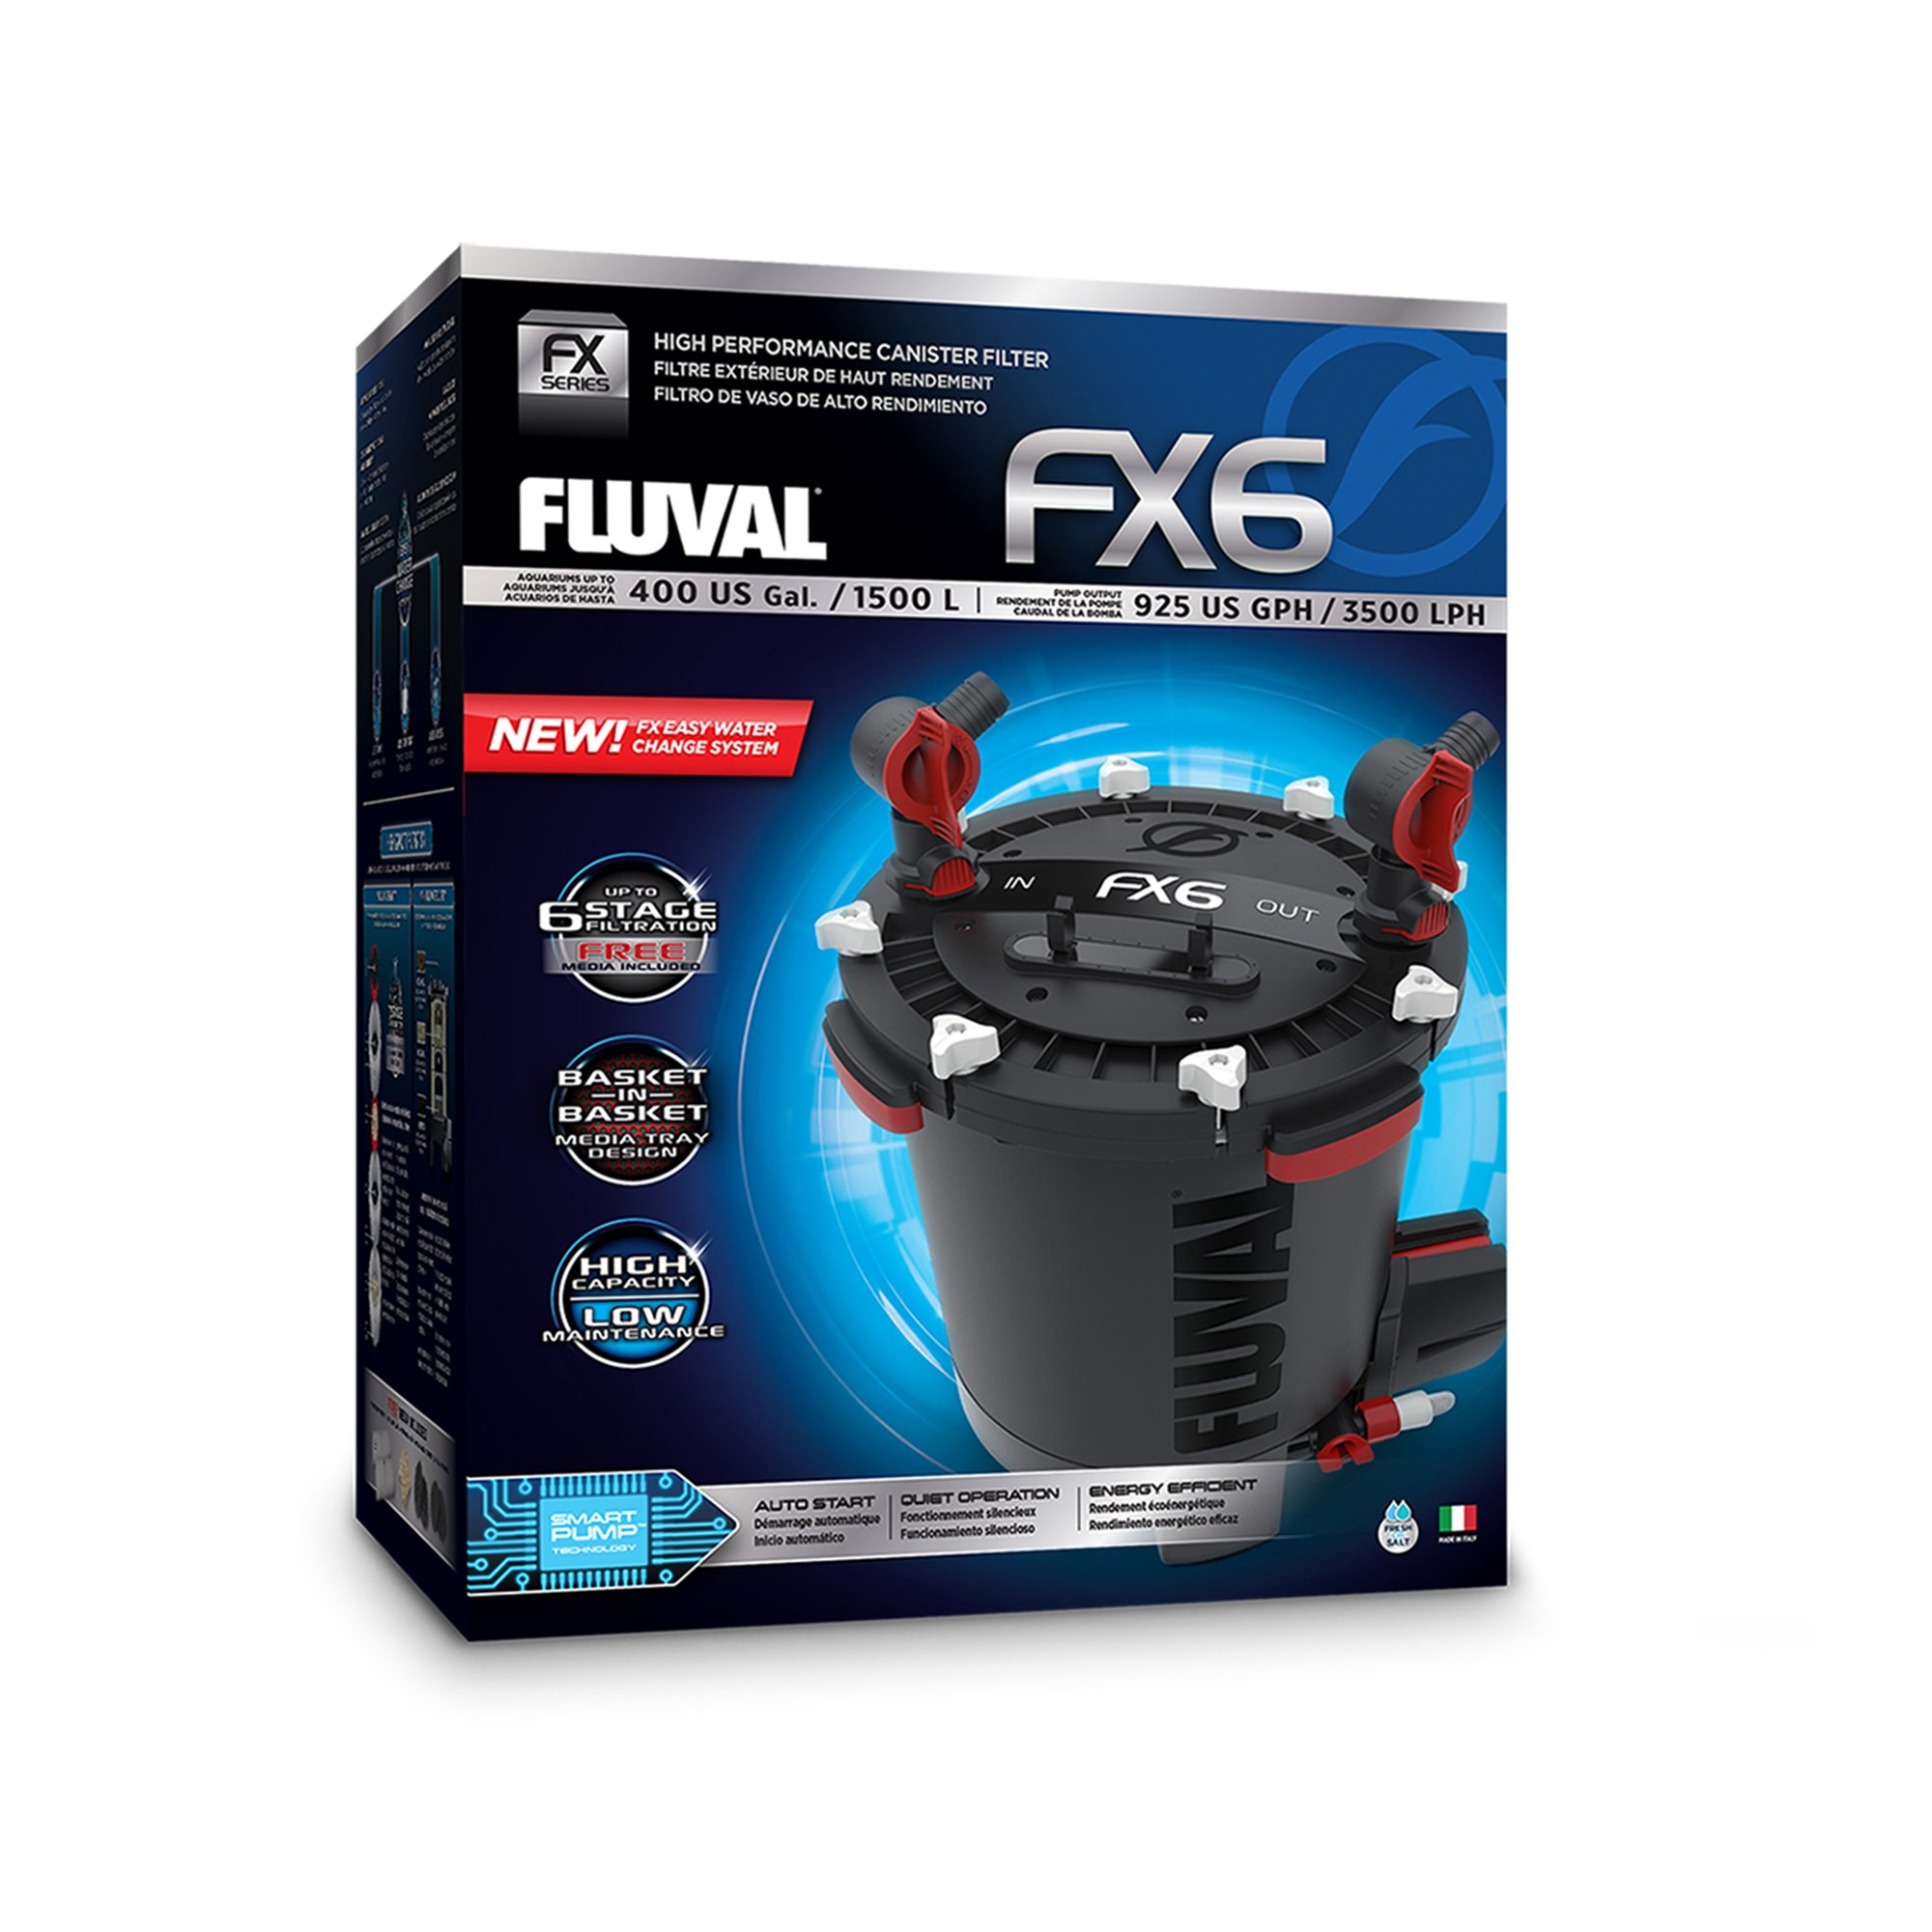 Fluval Fx6 Canister Filter Petco